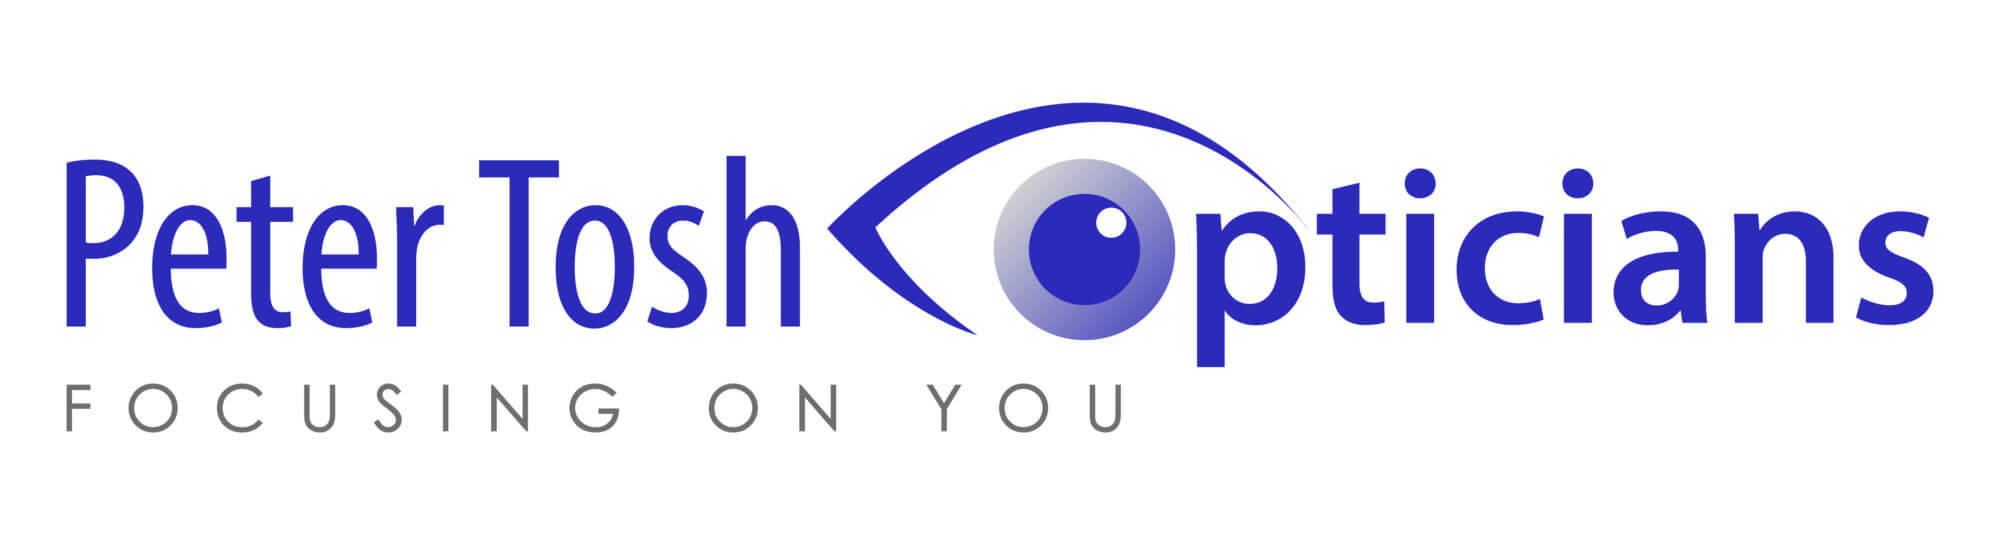 Peter Tosh Opticians Limited Logo